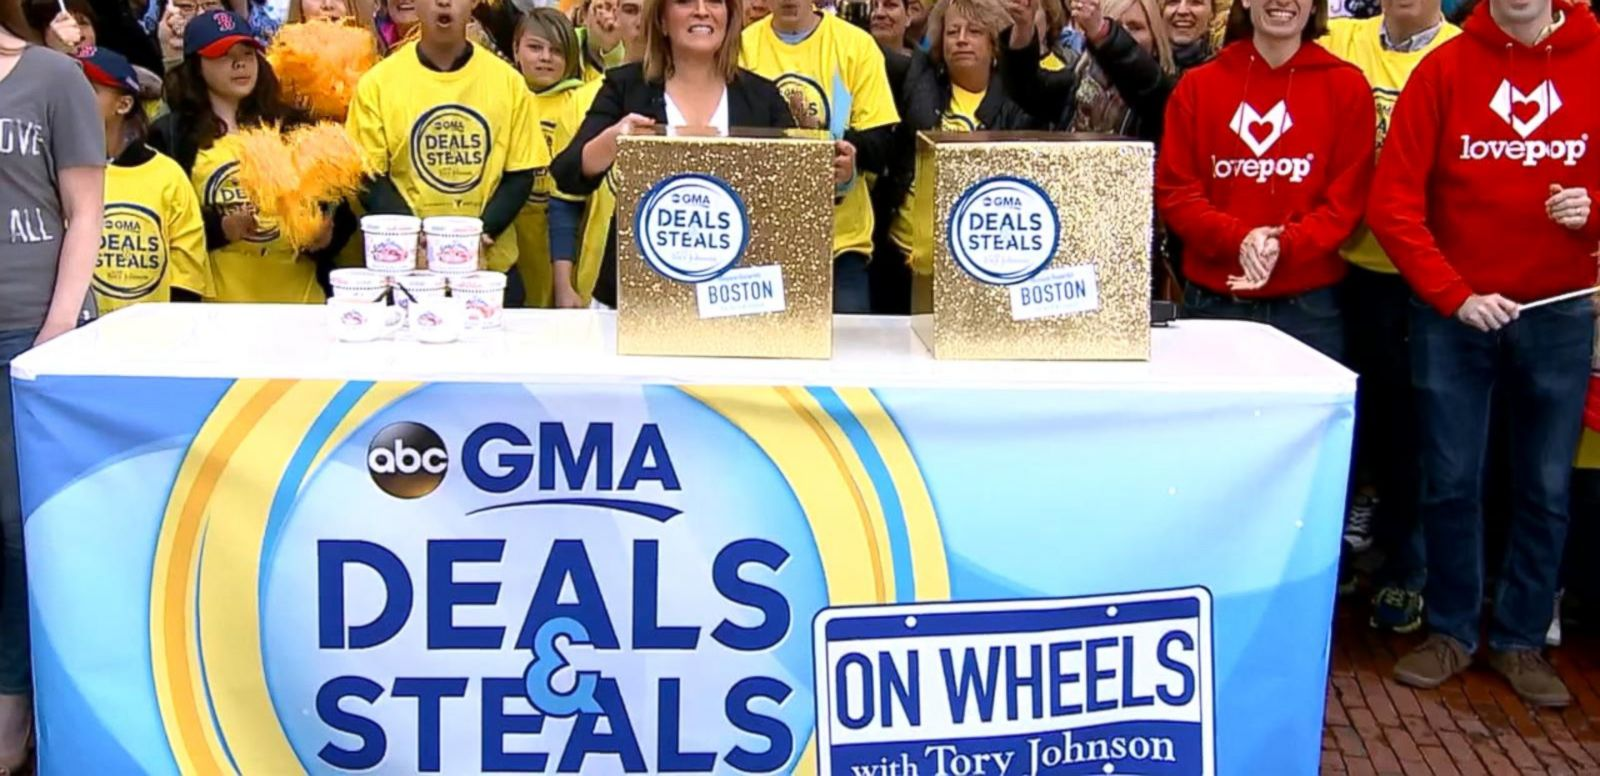 VIDEO: Deals and Steals on Wheels Hits Boston